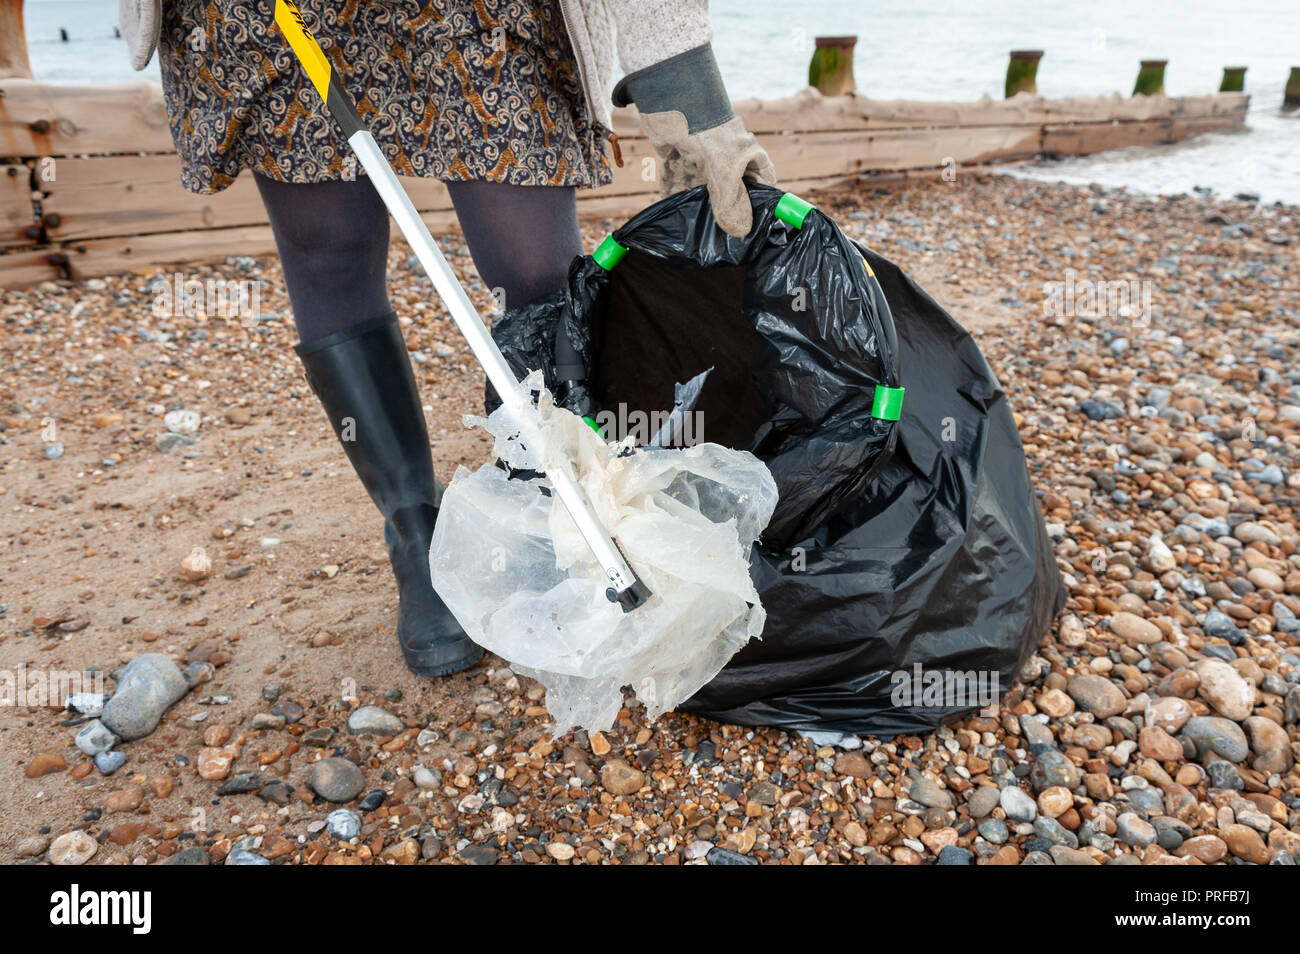 A woman using a litter picker puts plastic waste found on the beach into a black rubbish bag during a community beach clean up. - Stock Image